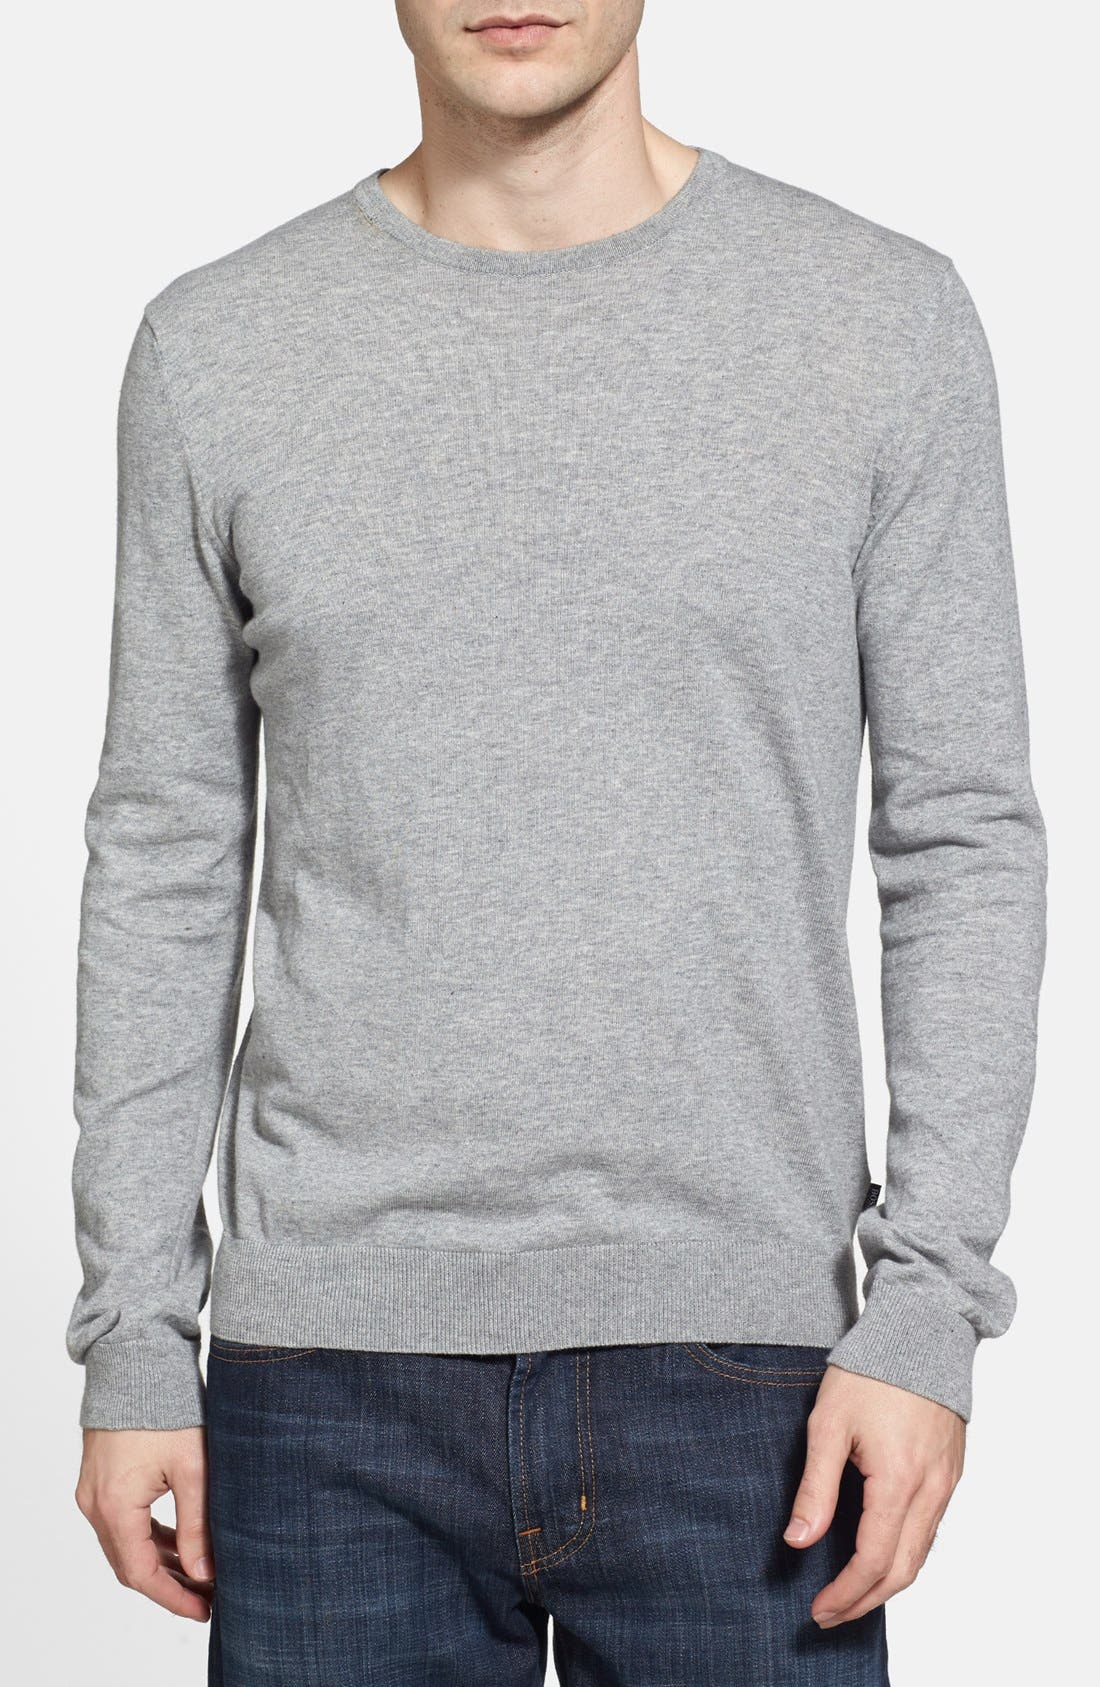 Alternate Image 1 Selected - BOSS HUGO BOSS 'Perinus' Crewneck Sweater